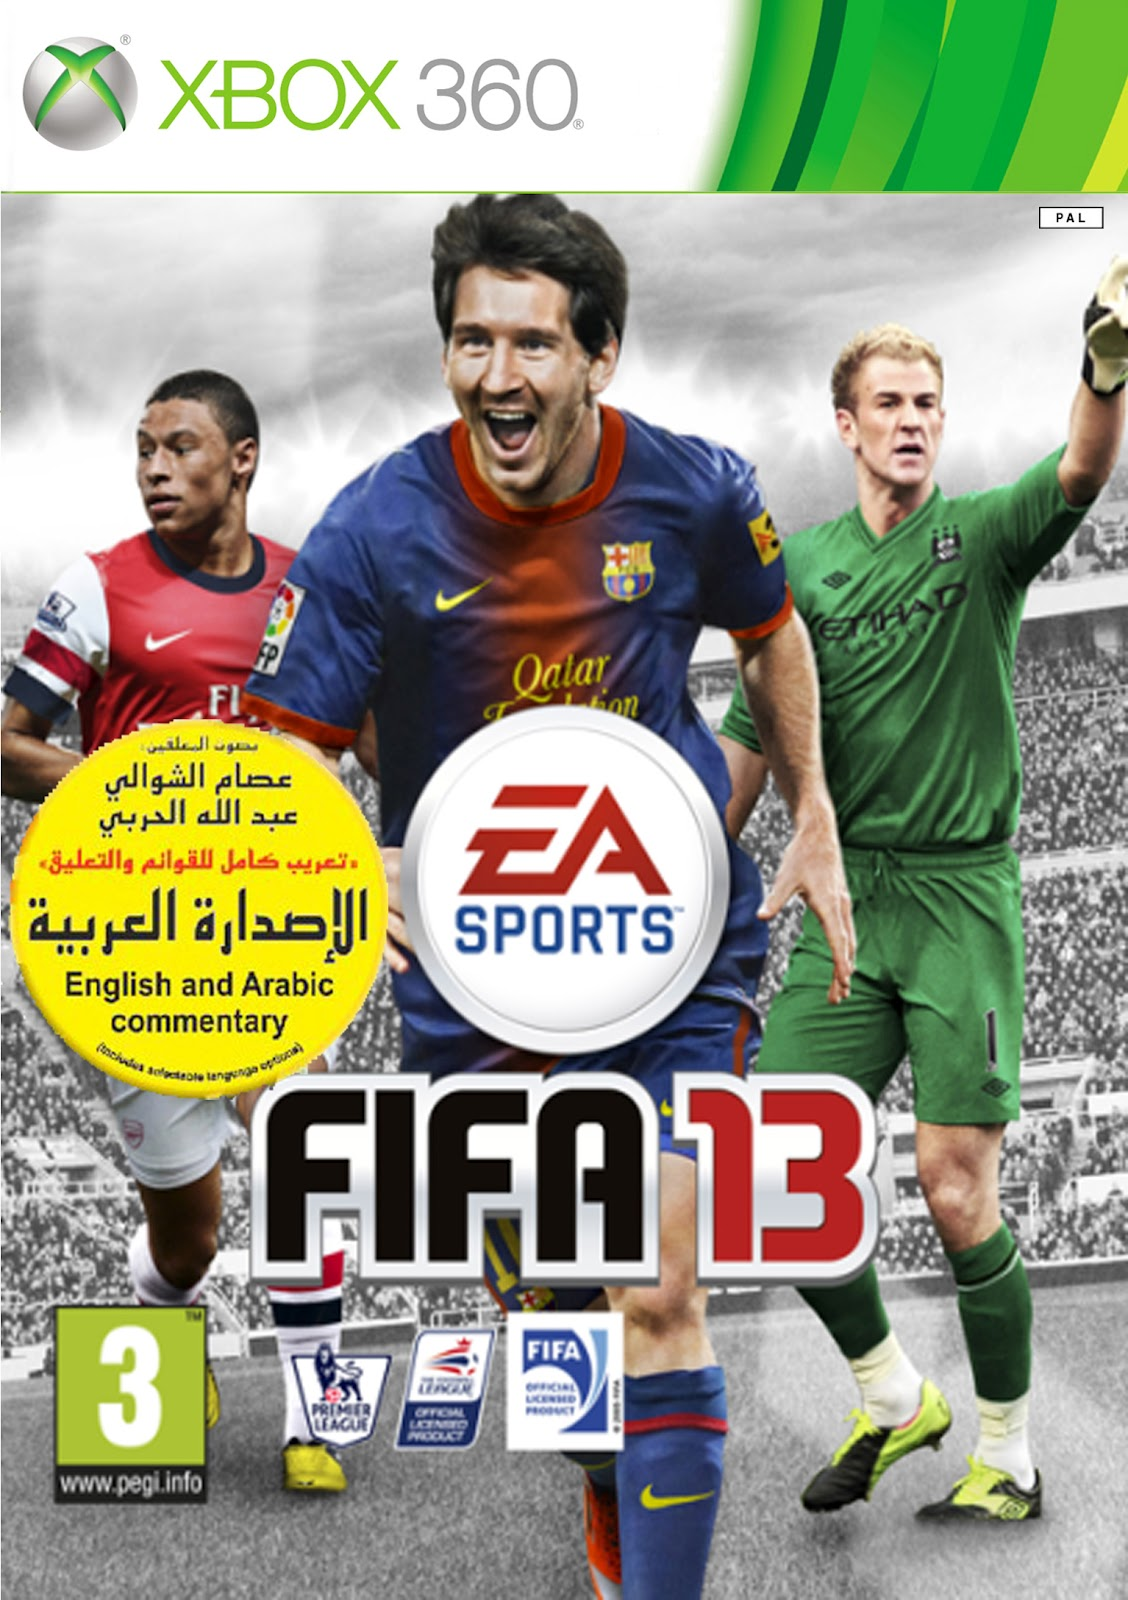 FIFA Manager 06 FULL PC Gametorrent download - YouTube